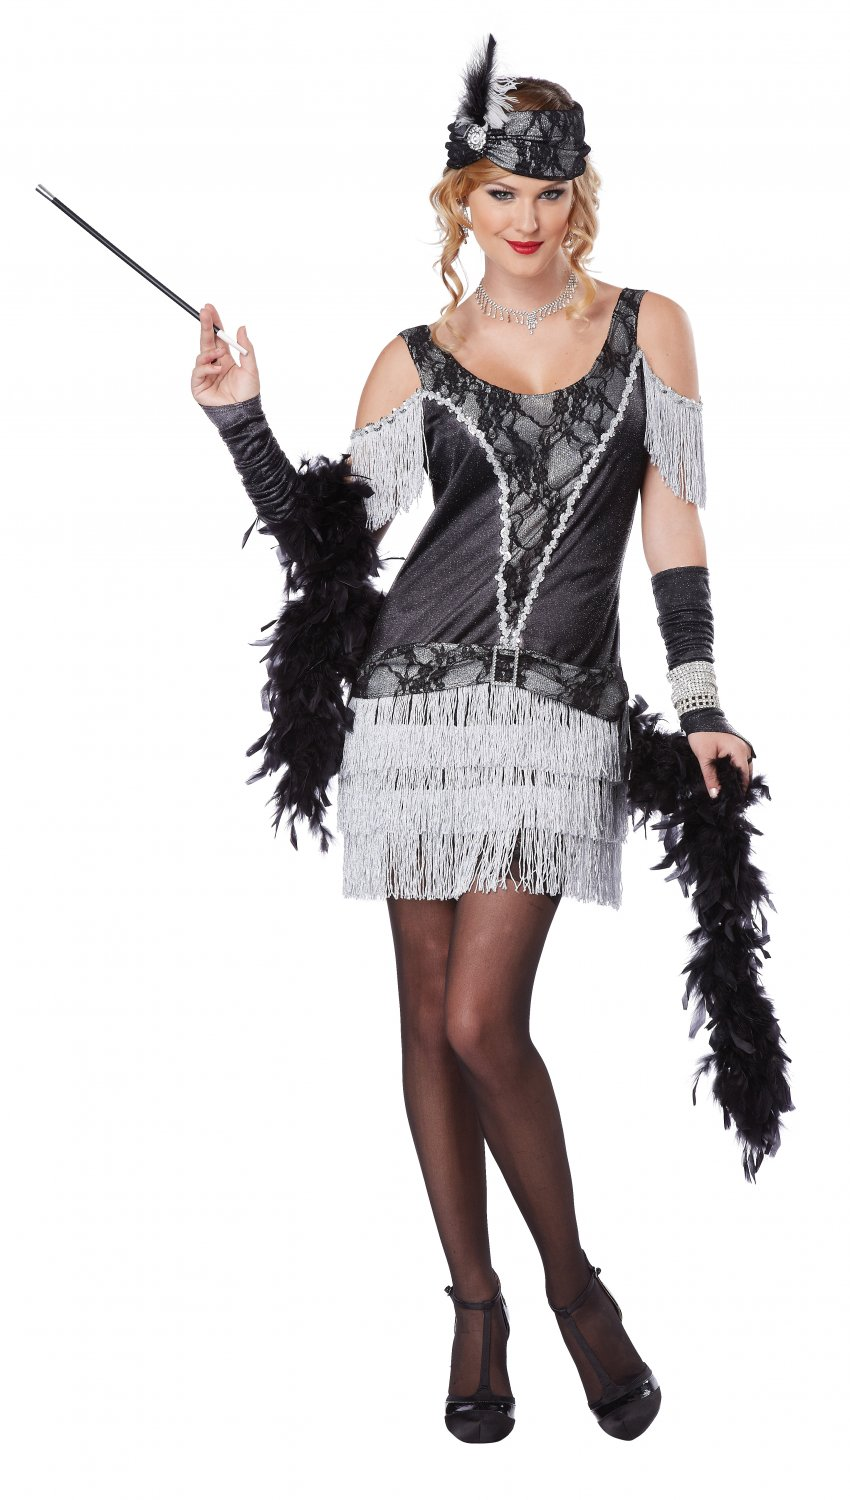 Razzle Dazzle Fashion Flapper Adult Costume Size: Medium #01352